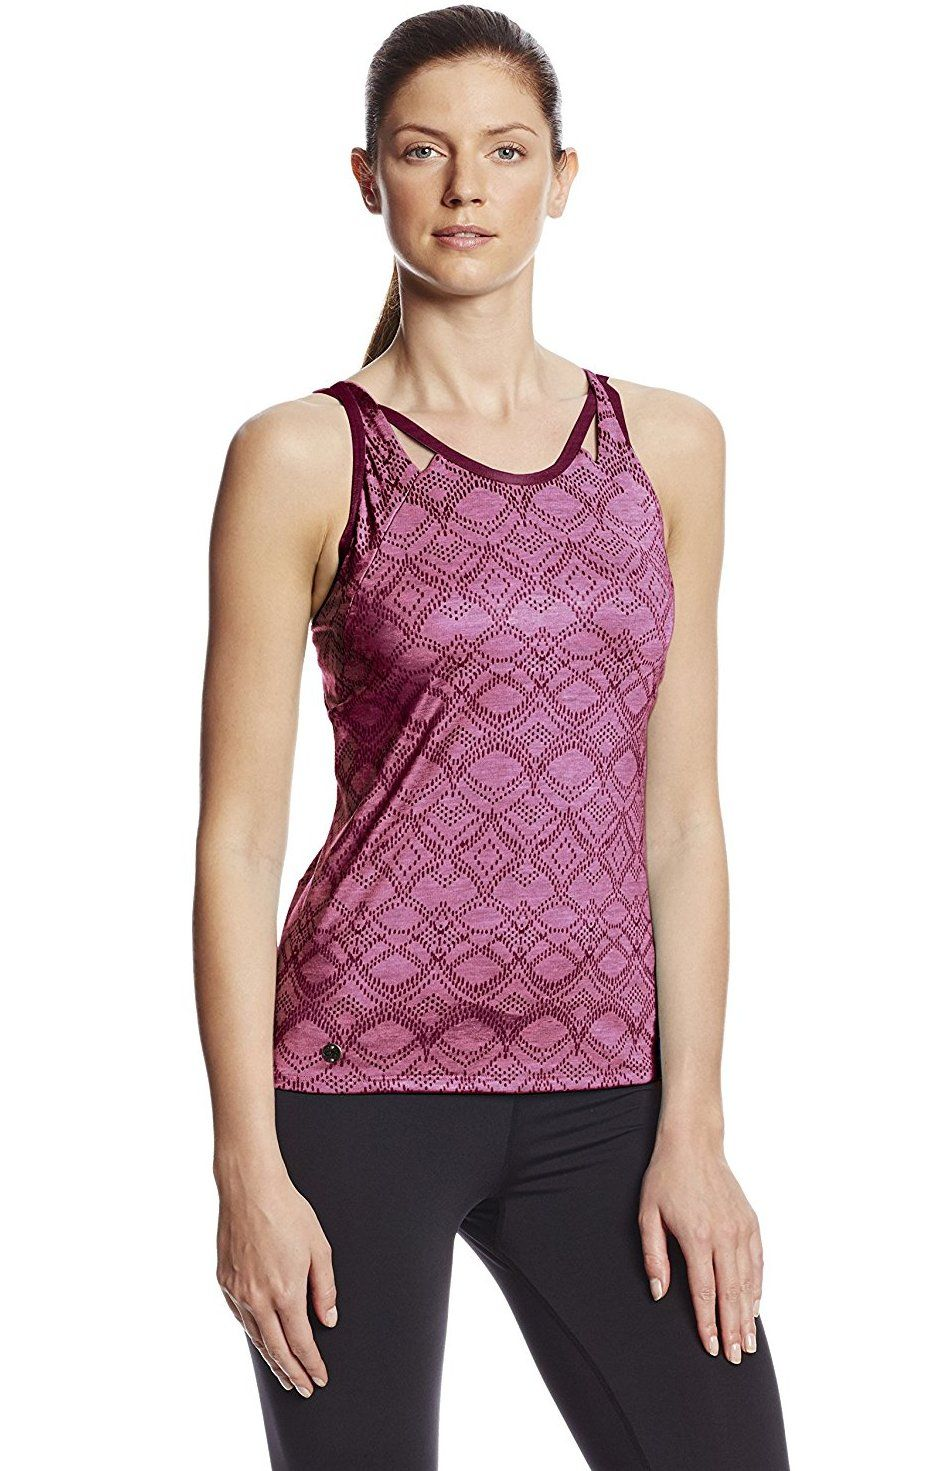 5c54c64ad Outdoor Research Women s Bewitched Tank Top. Shelf bra